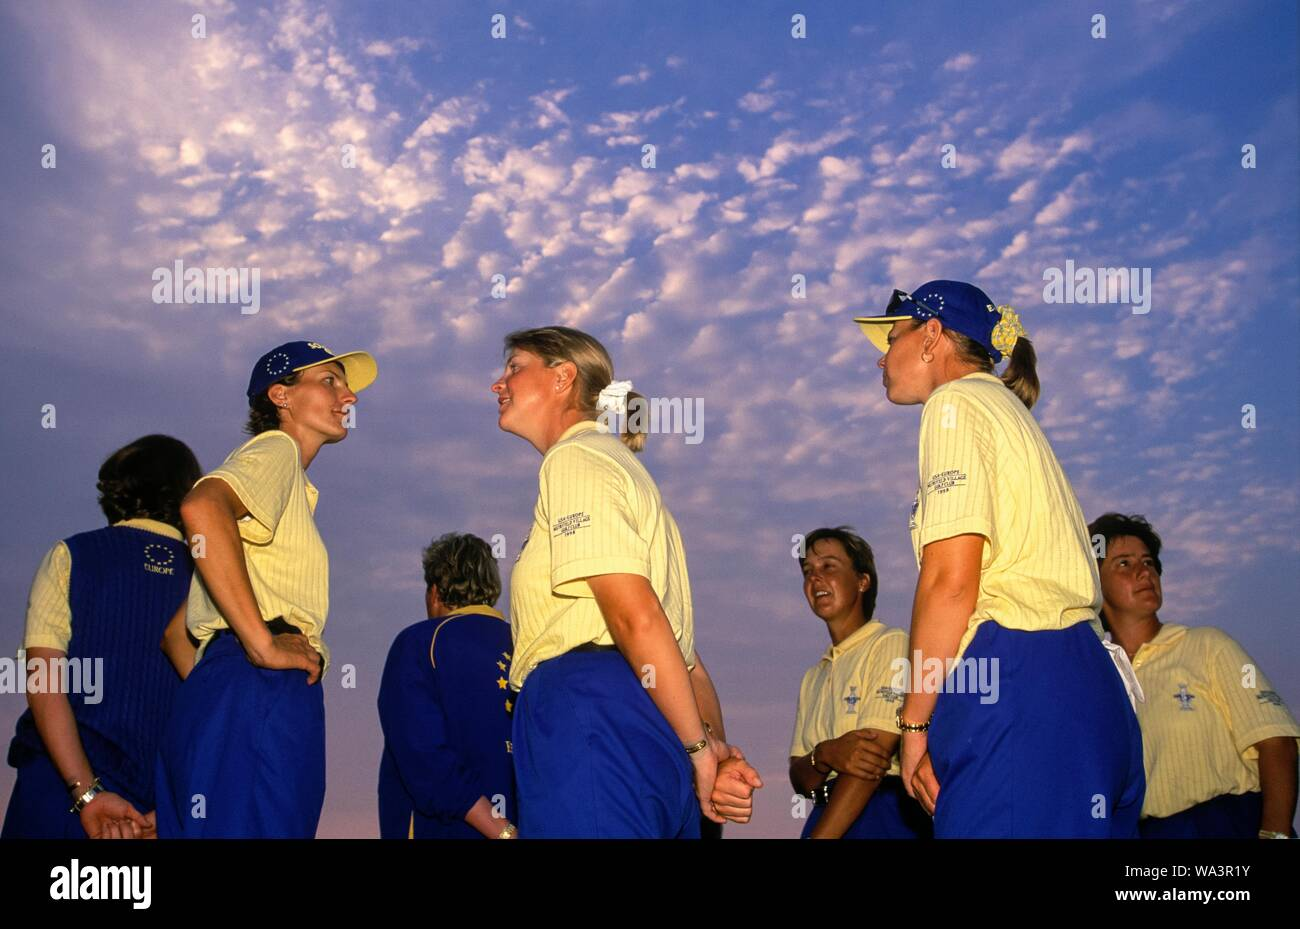 Solheim Cup Stock Photos & Solheim Cup Stock Images - Alamy